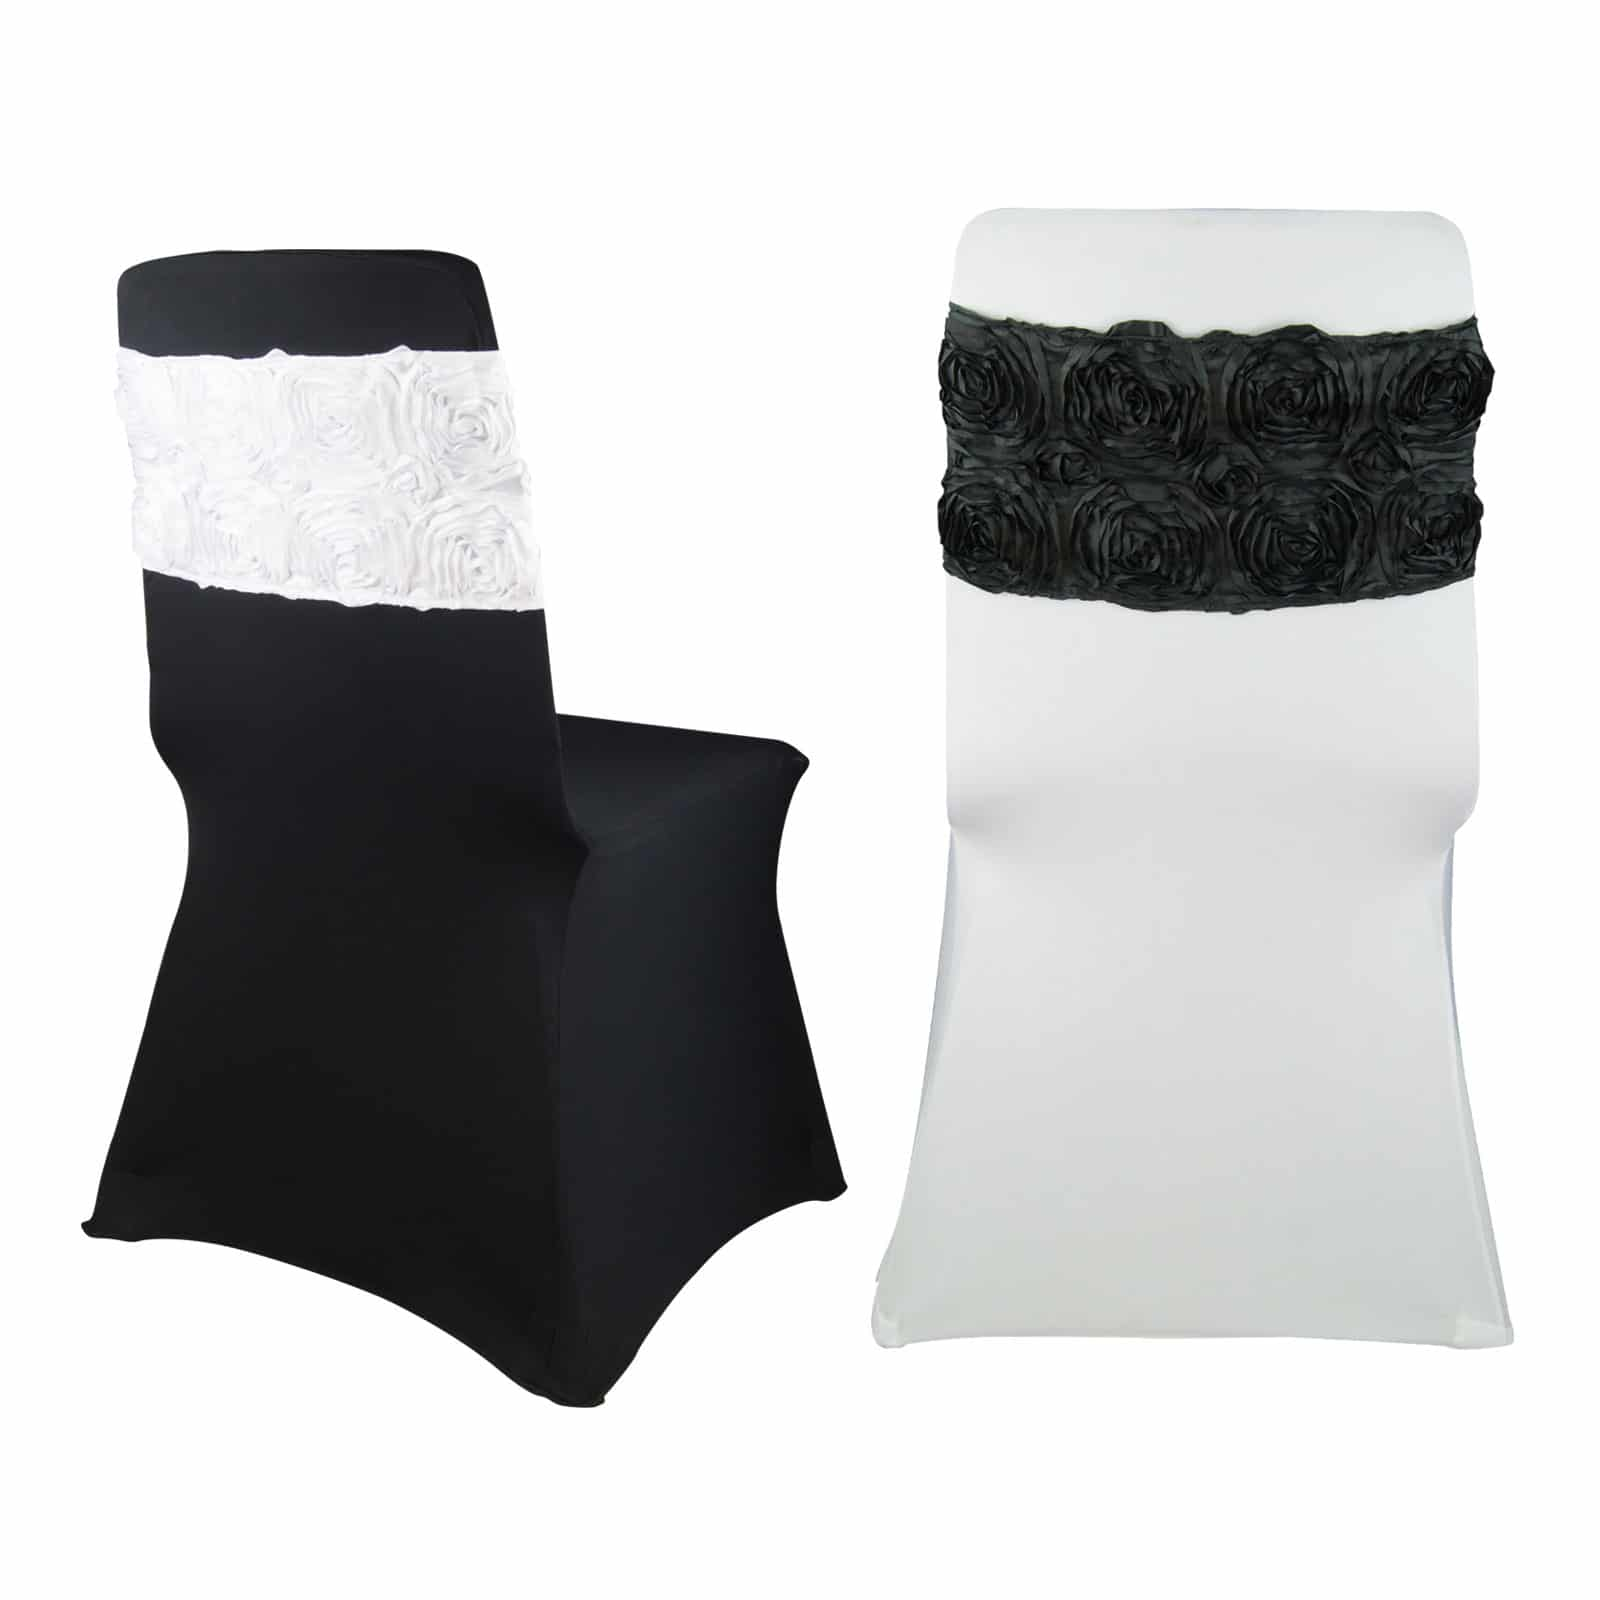 wedding chair cover hire adelaide folding reclining rosette bands - quality and universal